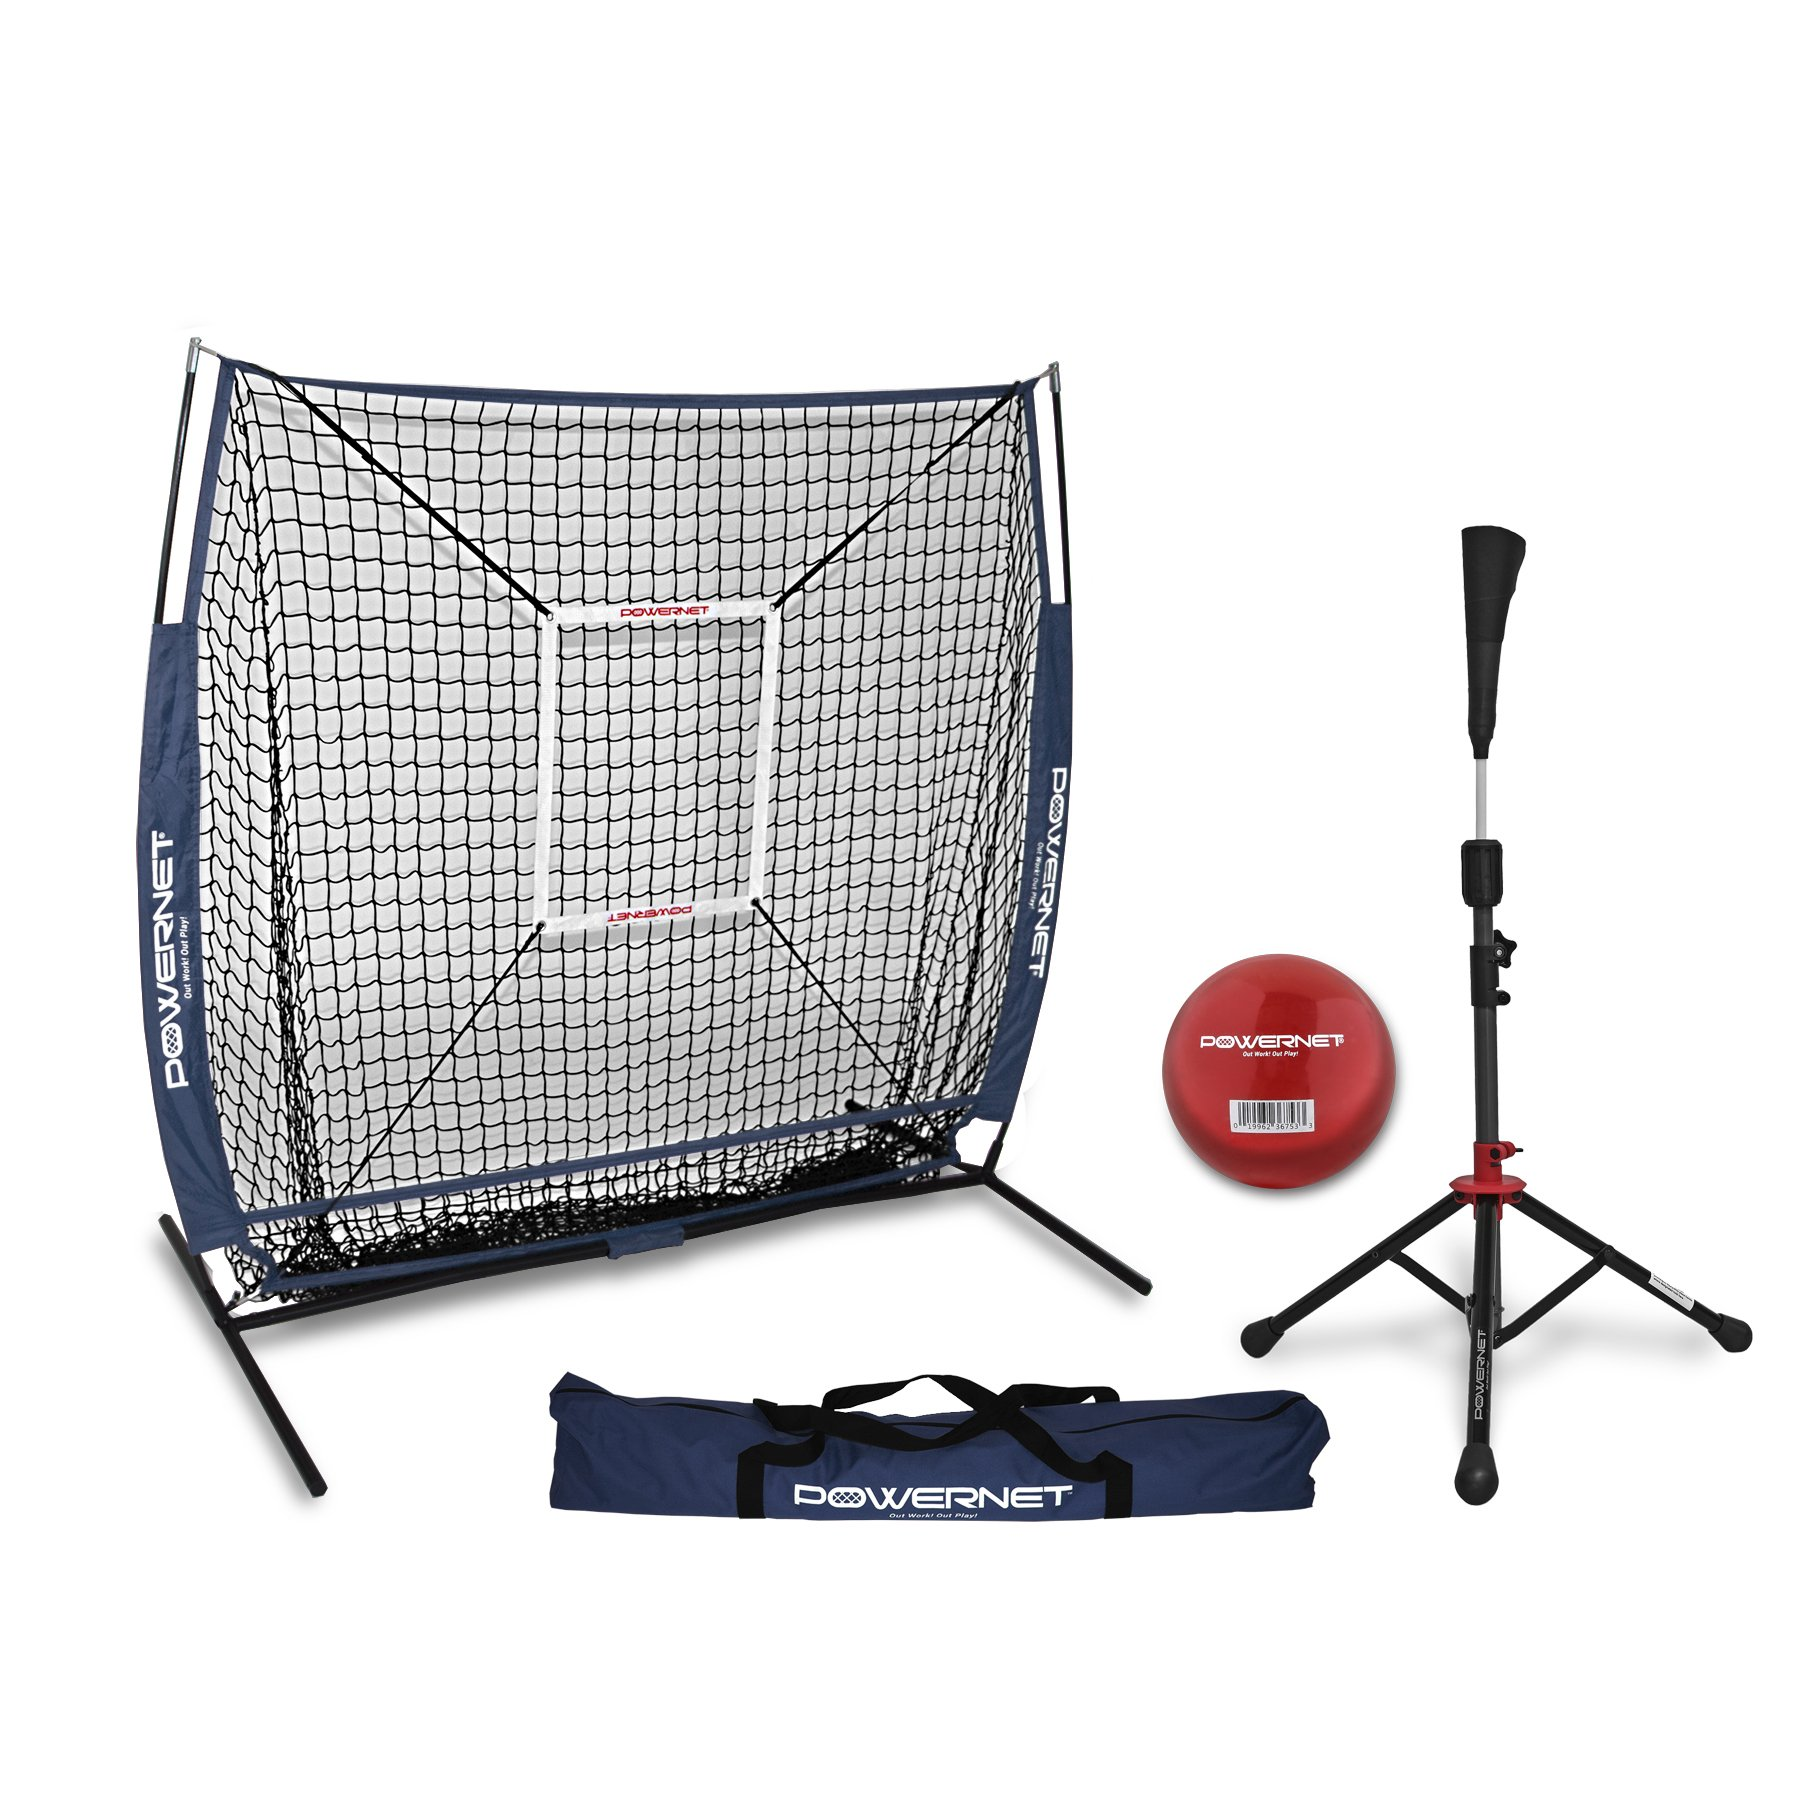 PowerNet 5x5 Practice Net + Deluxe Tee + Strike Zone + Weighted Training Ball Bundle (Navy) | Baseball Softball Pitching Batting Coaching Pack | Work on Pitch Accuracy | Build Plate Confidence